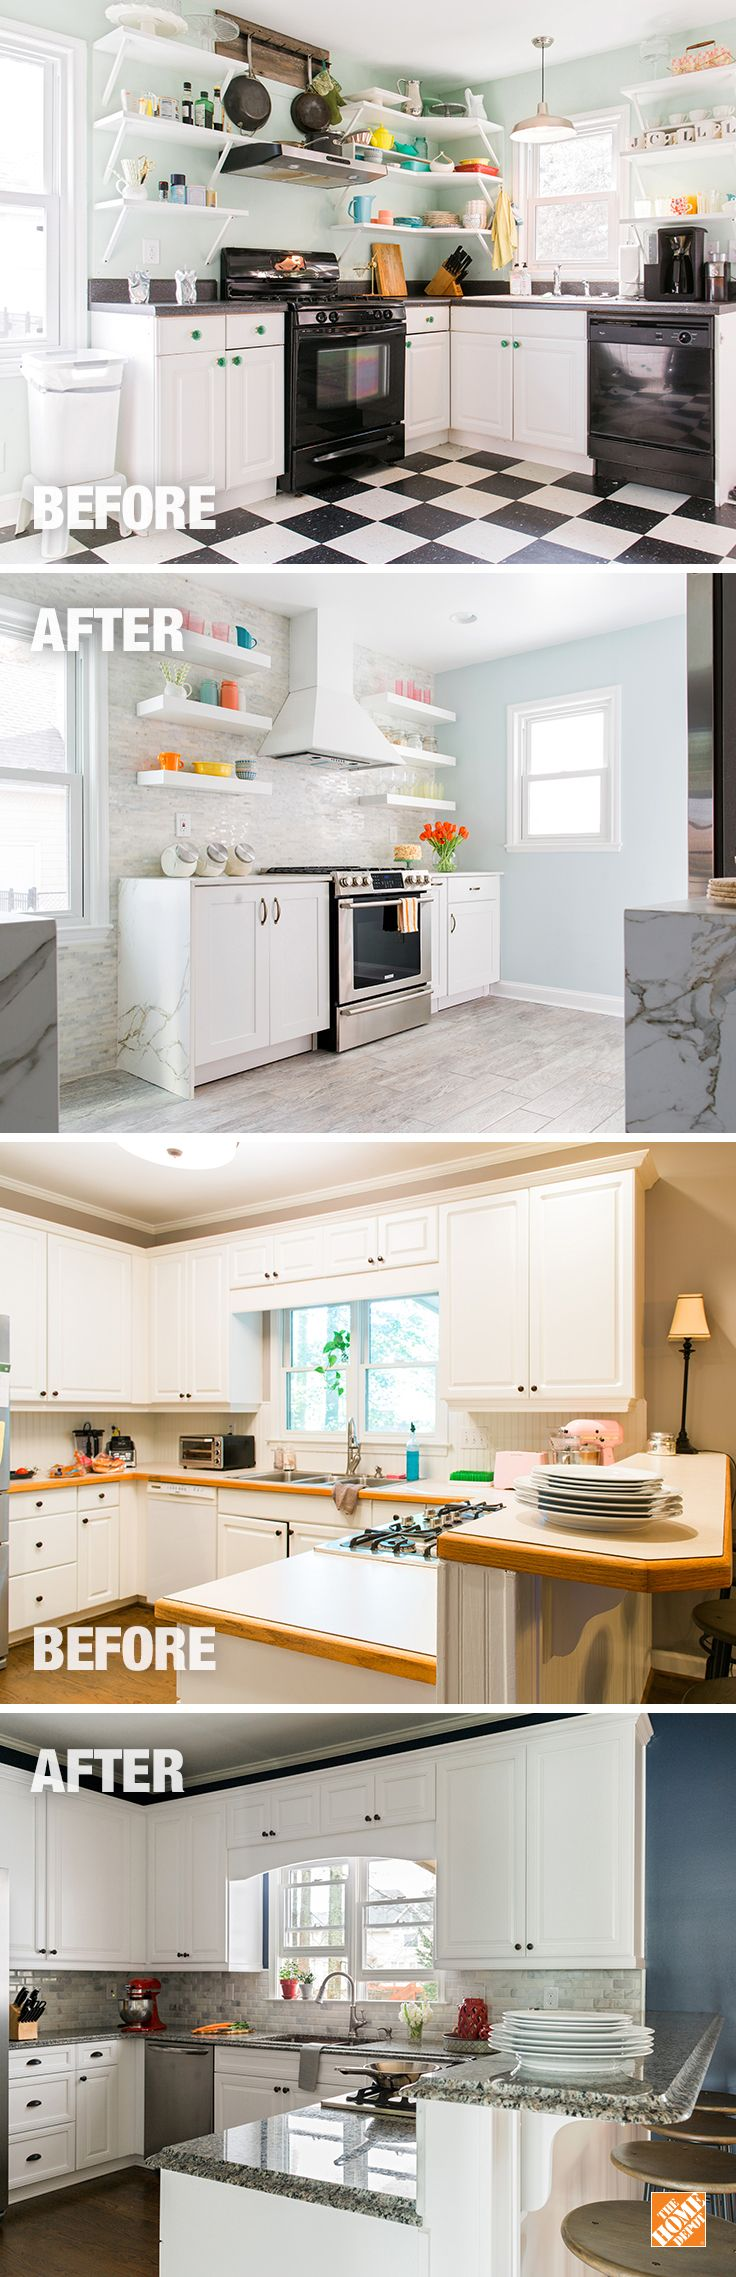 kitchen ideas inspiration home depot kitchen design Get inspiration with The Home Depot s thoughtful Kitchen designs From renovation ideas to a Kitchen remodel find the best ideas in one place